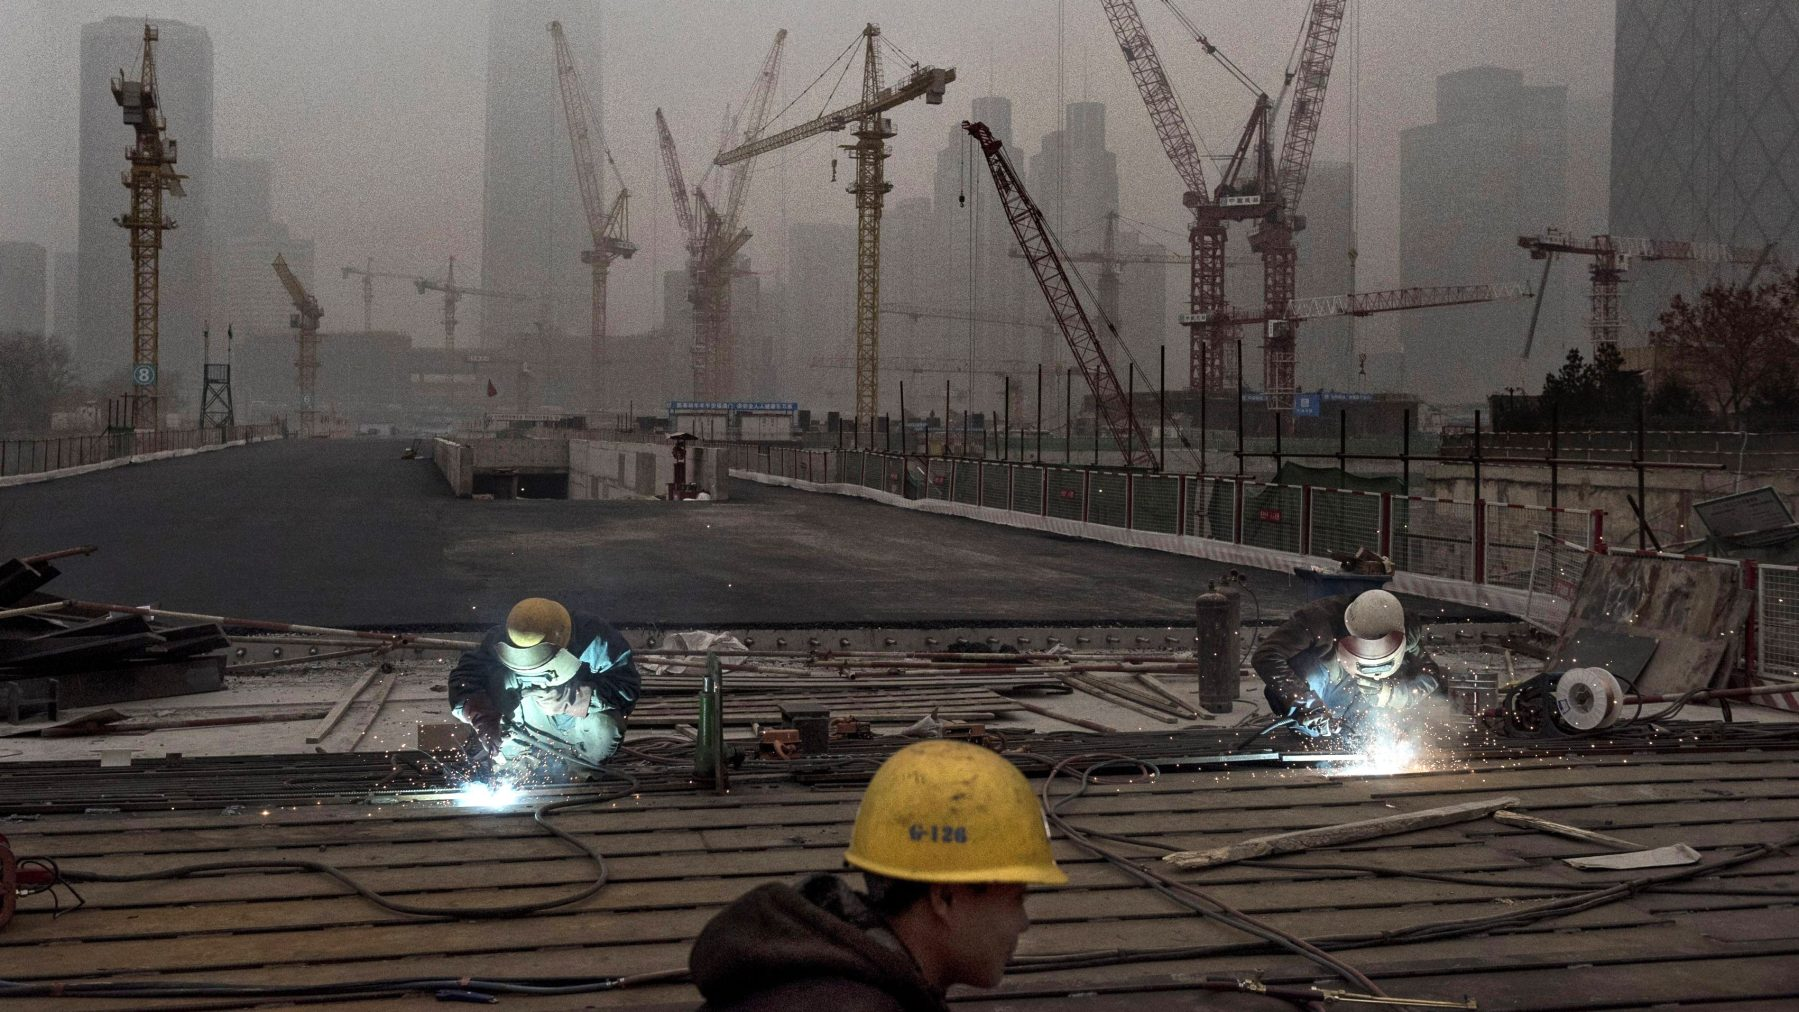 Chinese workers weld at a construction site in heavy pollution on November 29, 2014 in Beijing, China. United States President Barack Obama and China's president Xi Jinping agreed on a plan to limit carbon emissions by their countries, which are the world's two biggest polluters, at a summit in Beijing earlier this month.  (Kevin Frayer/Getty Images)